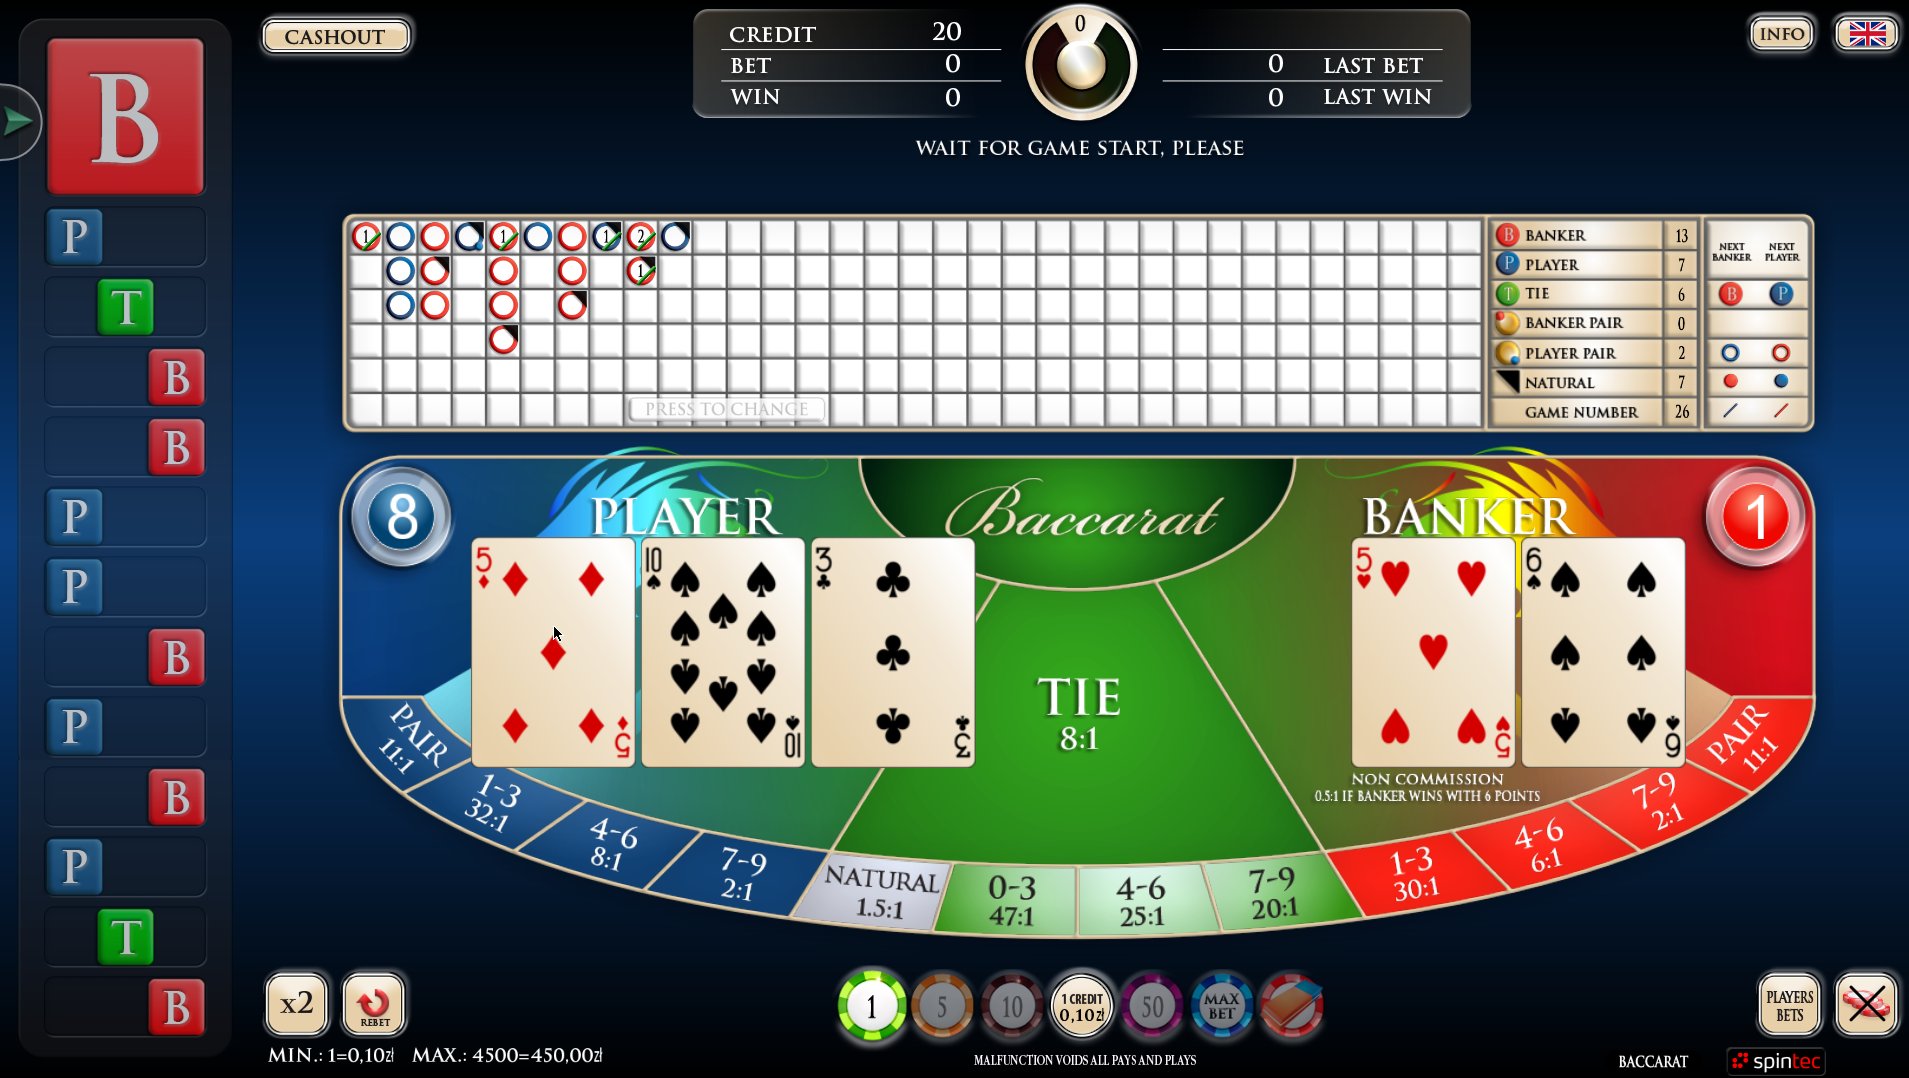 Electronic Baccarat Karma Gen2 – A card game full of suspense and excitement